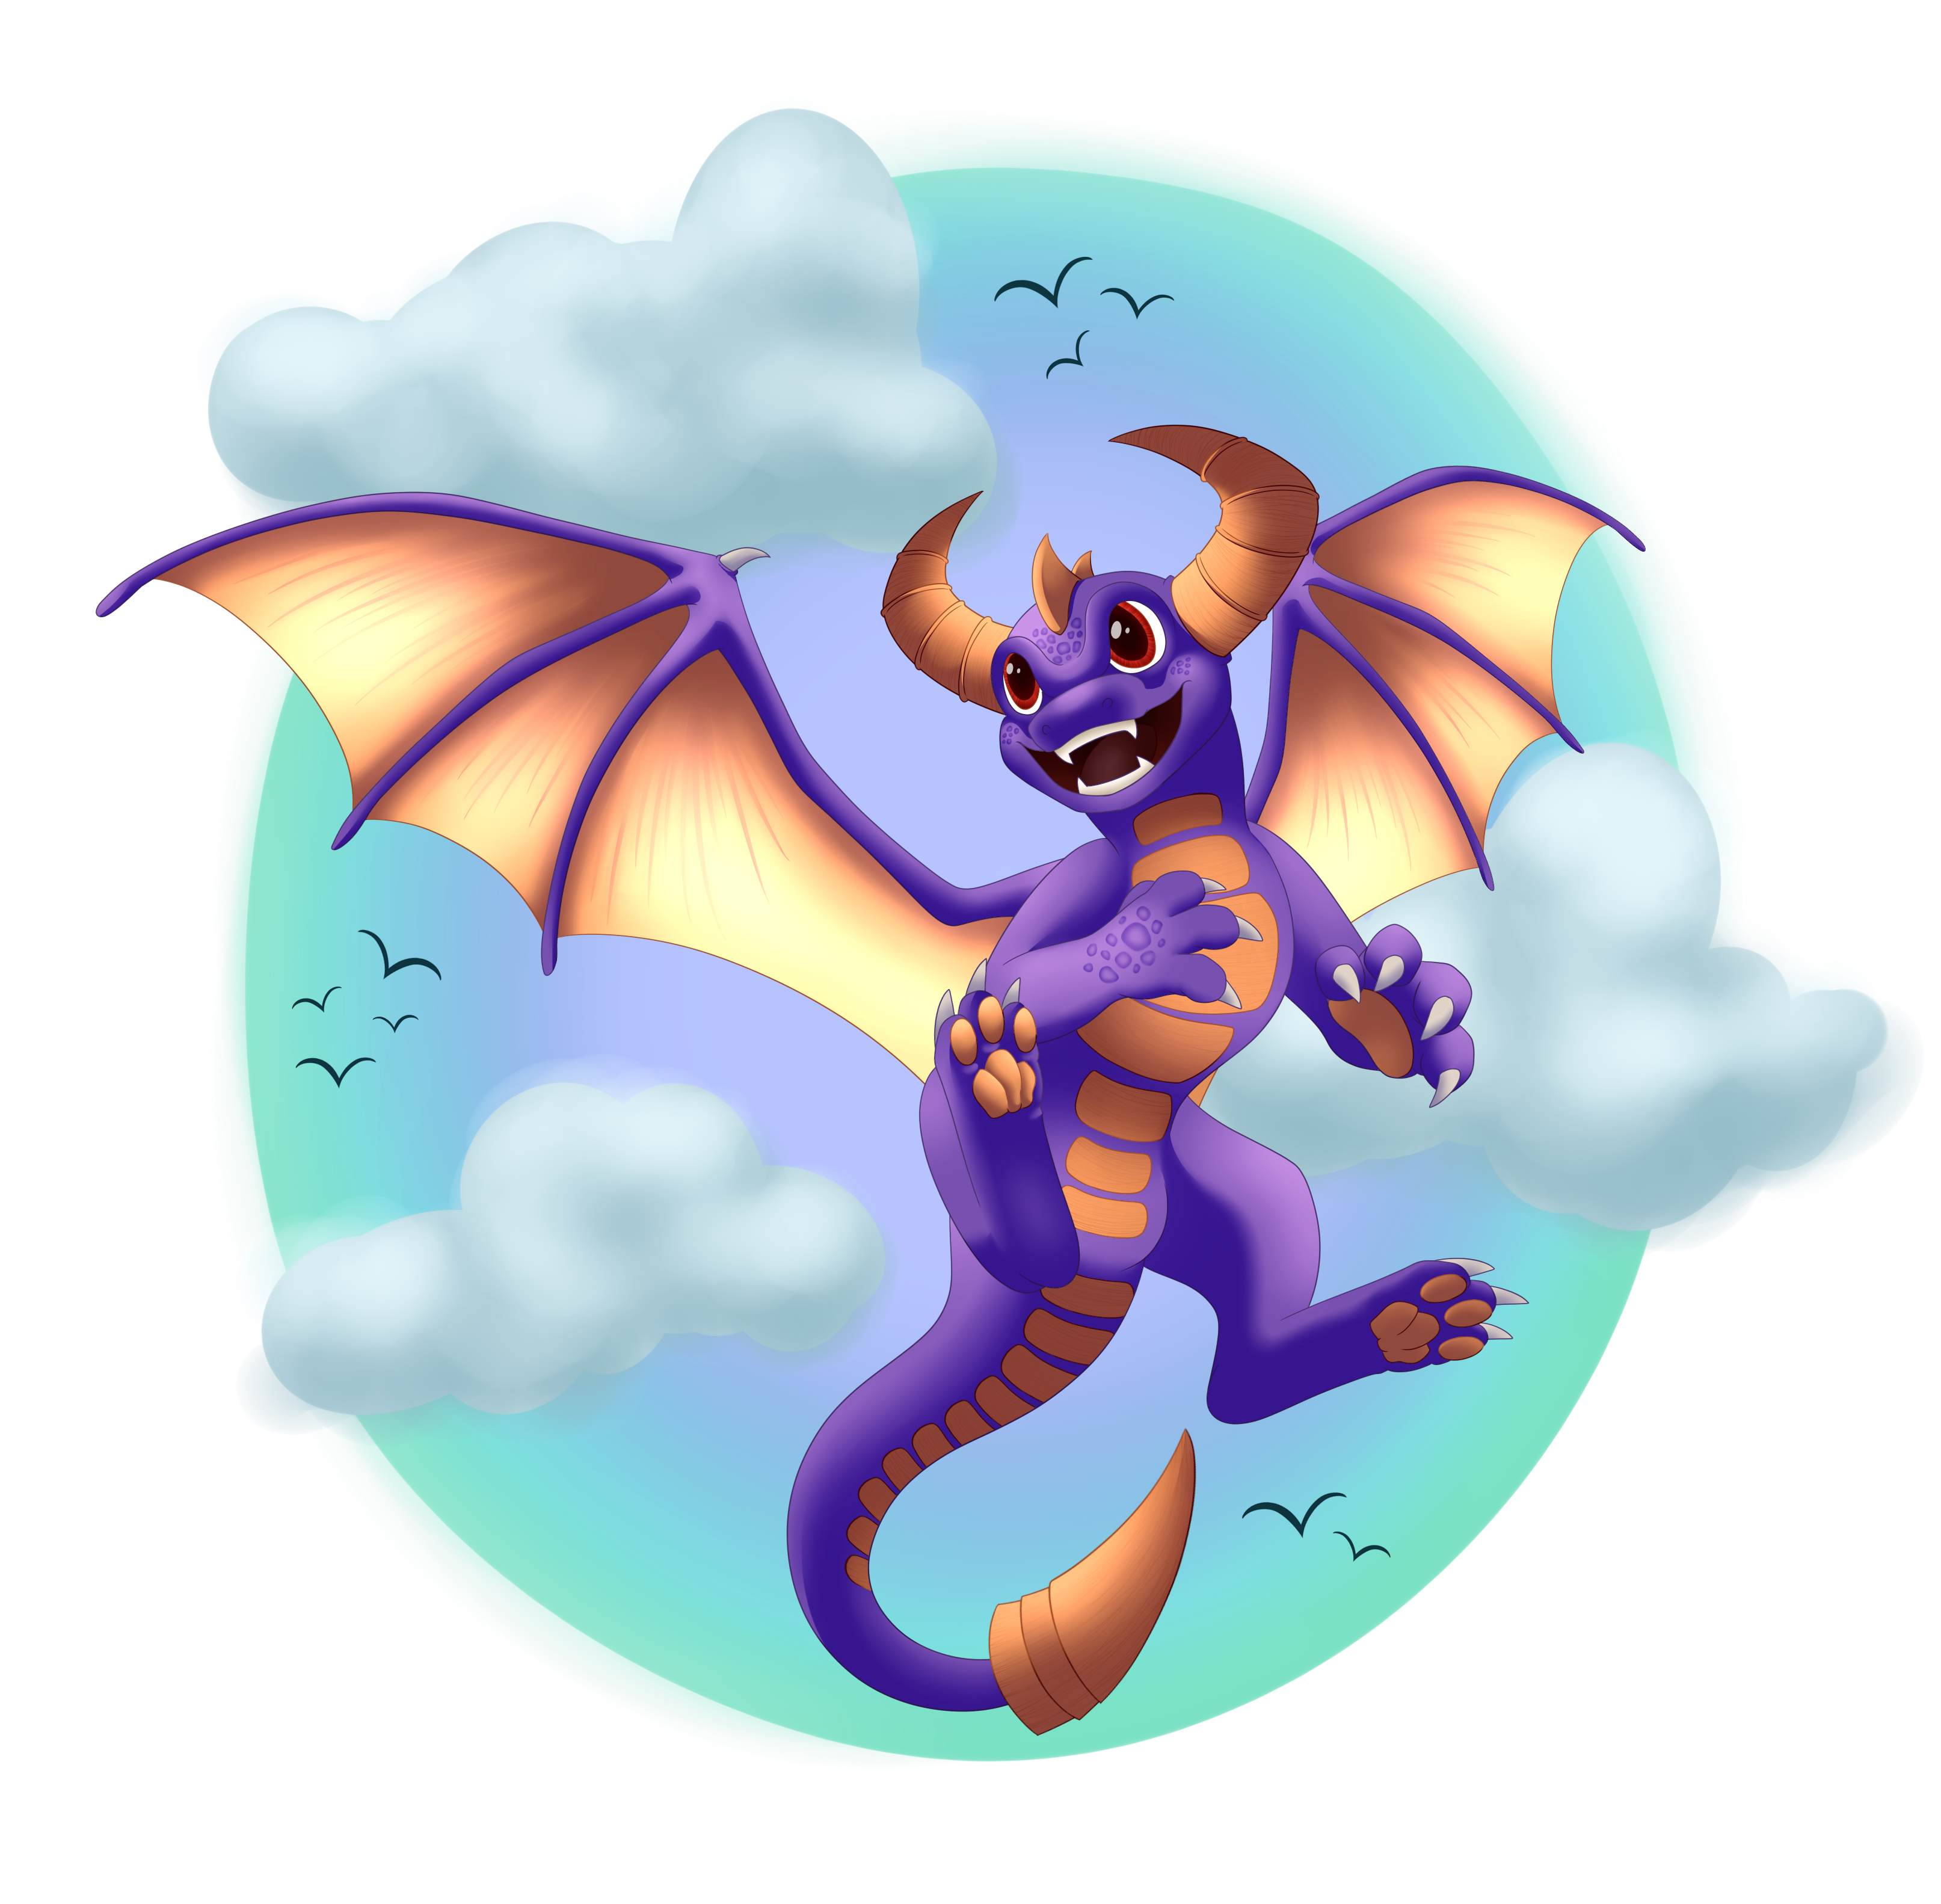 skylander spyro fan art on dragon fun place deviantart